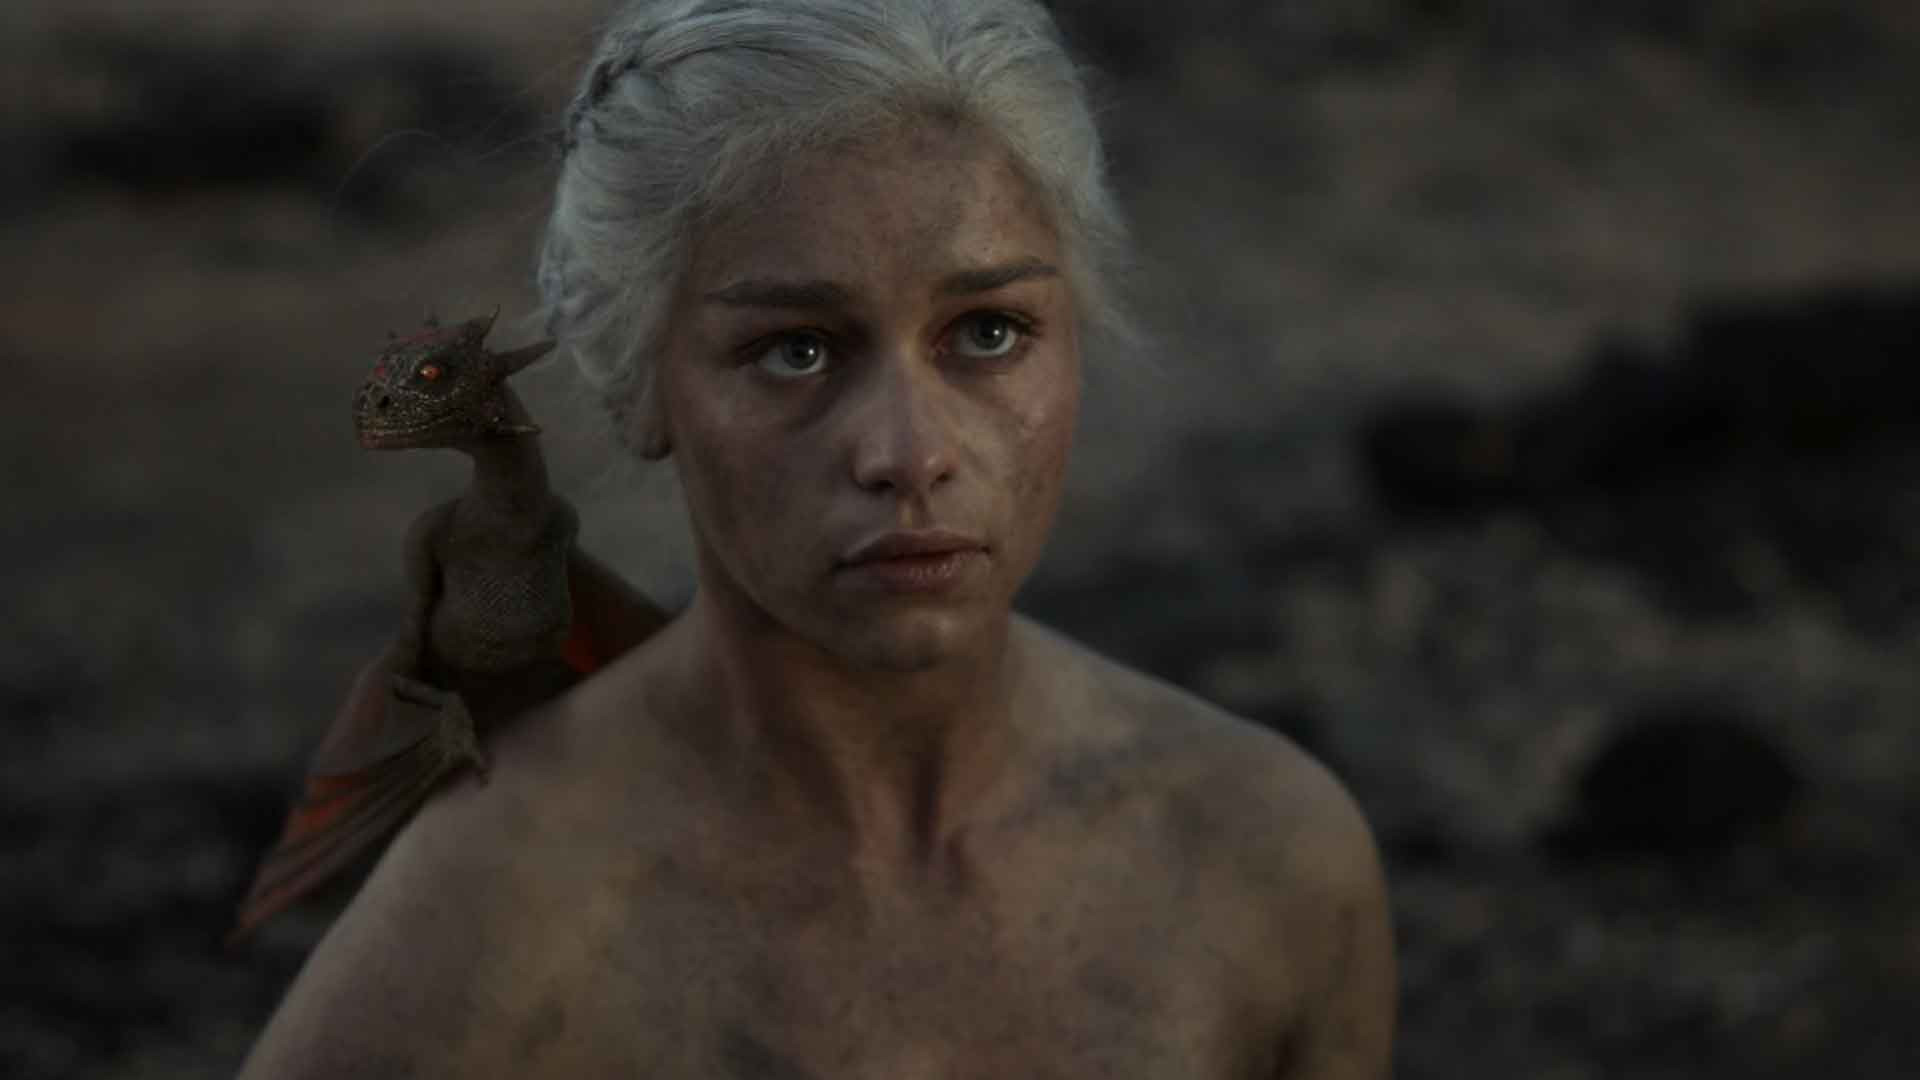 Game of Thrones Season 1 Daenerys Targaryen